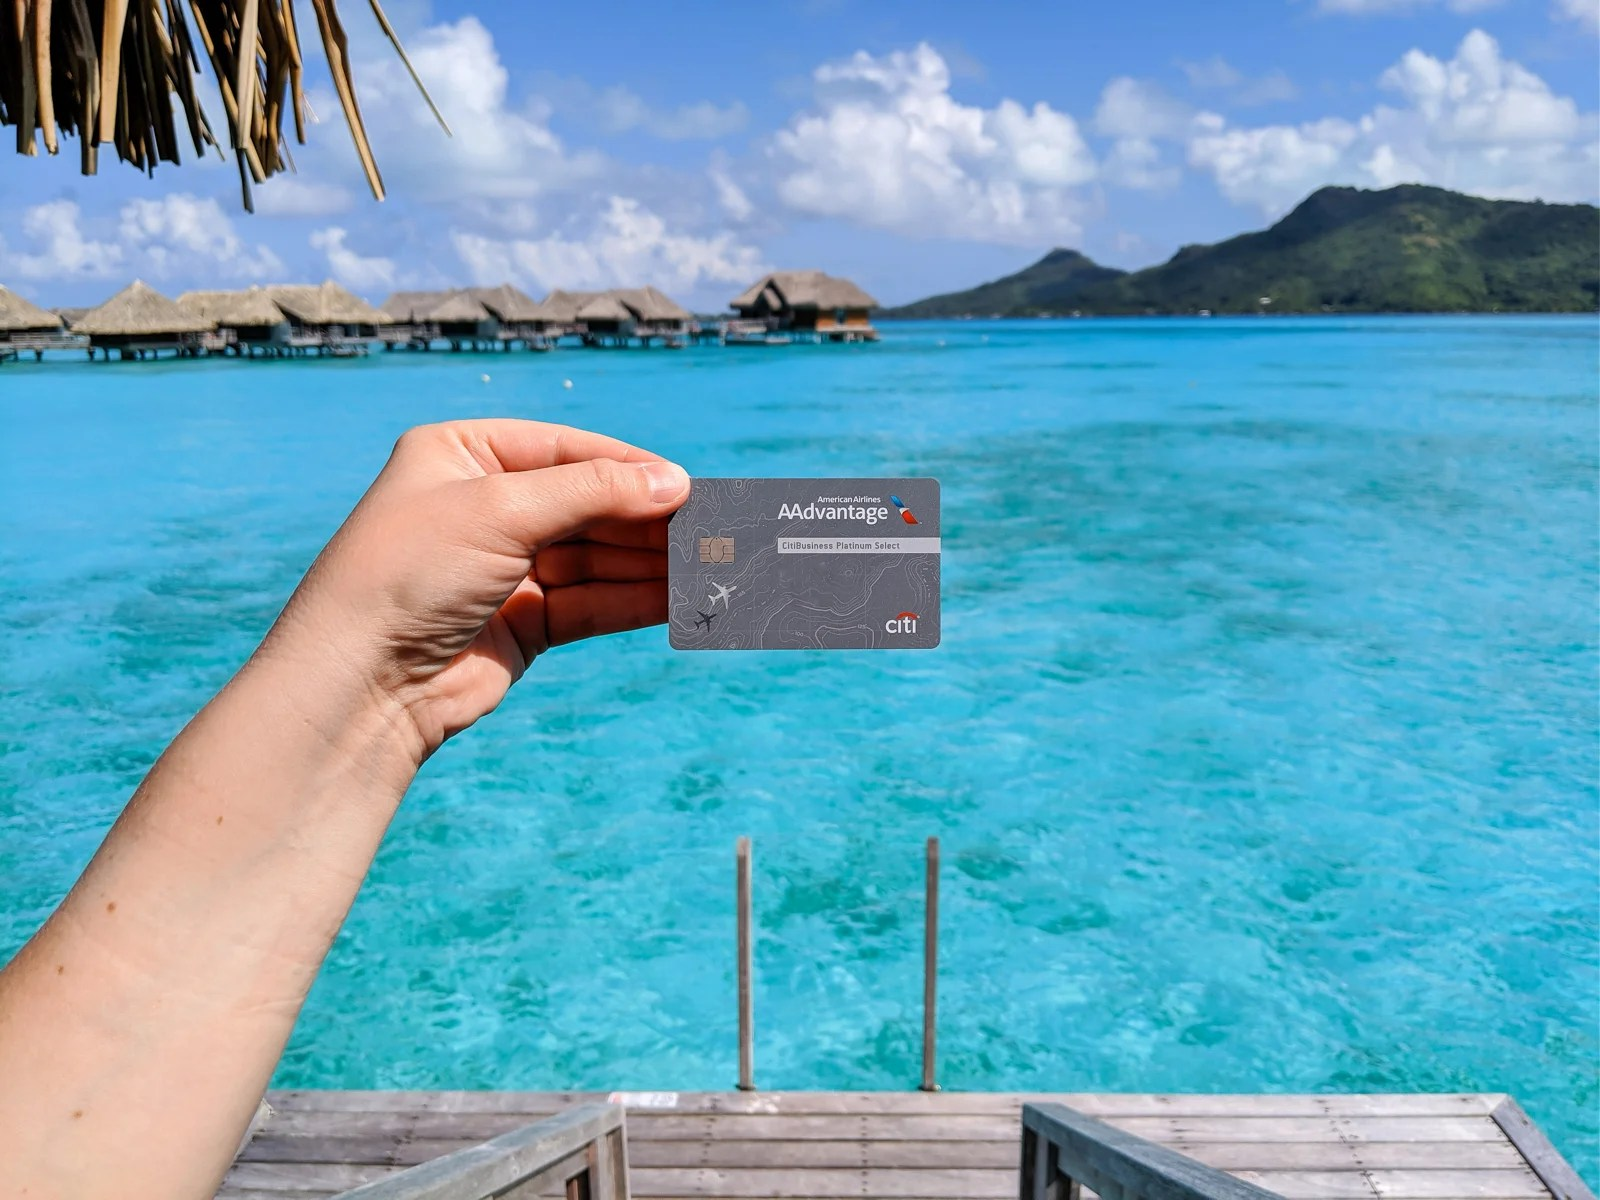 Watch Out For New 48-Month Restrictions on Some Citi Credit Card Applications